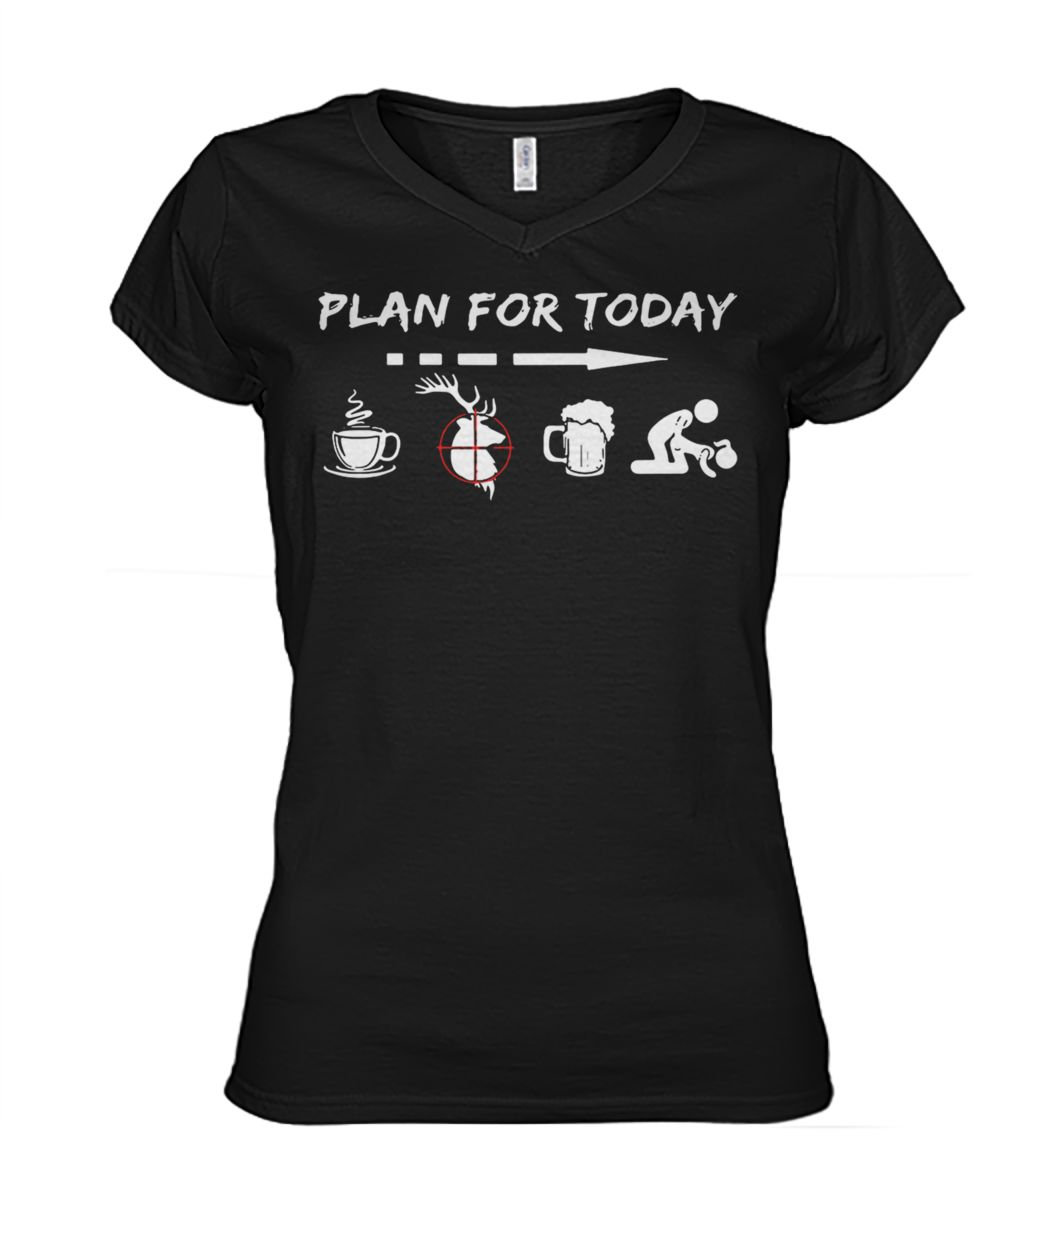 Plan for today are coffee hunter beer and sex women's v-neck